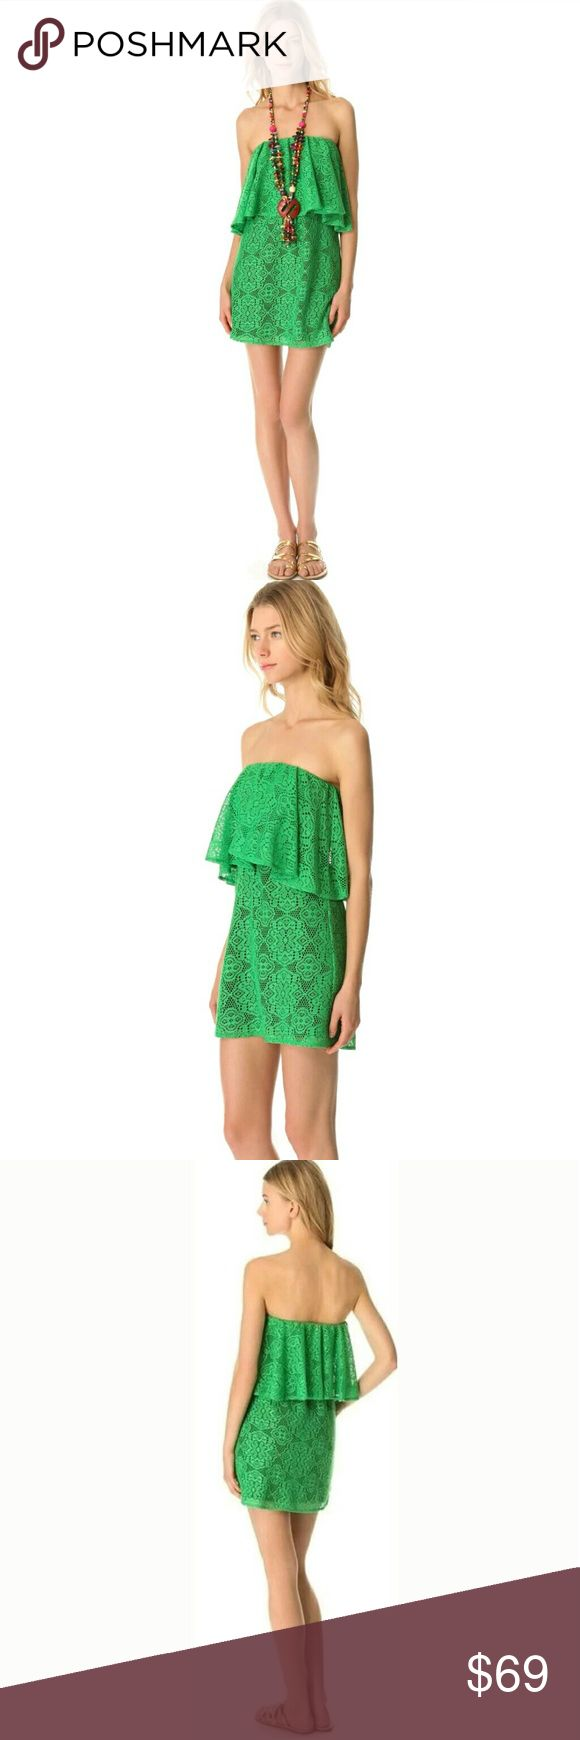 """T-BAGS Los Angeles green lace mini ruffle dress New. No tags.   A cheery, playful & flirty lace dress. Gathered elastic secures the strapless top hem which is detailed with a lush ruffle overlay & smocked elastic curves around the waist. Contrast lining pops against the floral pattern  Model: Misa Shell: 100% Viscose Lining: 96% Venezia 4% Spandex stretchy comes with necklace dry clean Made in the USA  Approx Measurements Length: 24"""" Bust: 13.25"""" Waist: 10"""" Hips: 18.5"""" T-Bags Dresses Mini"""